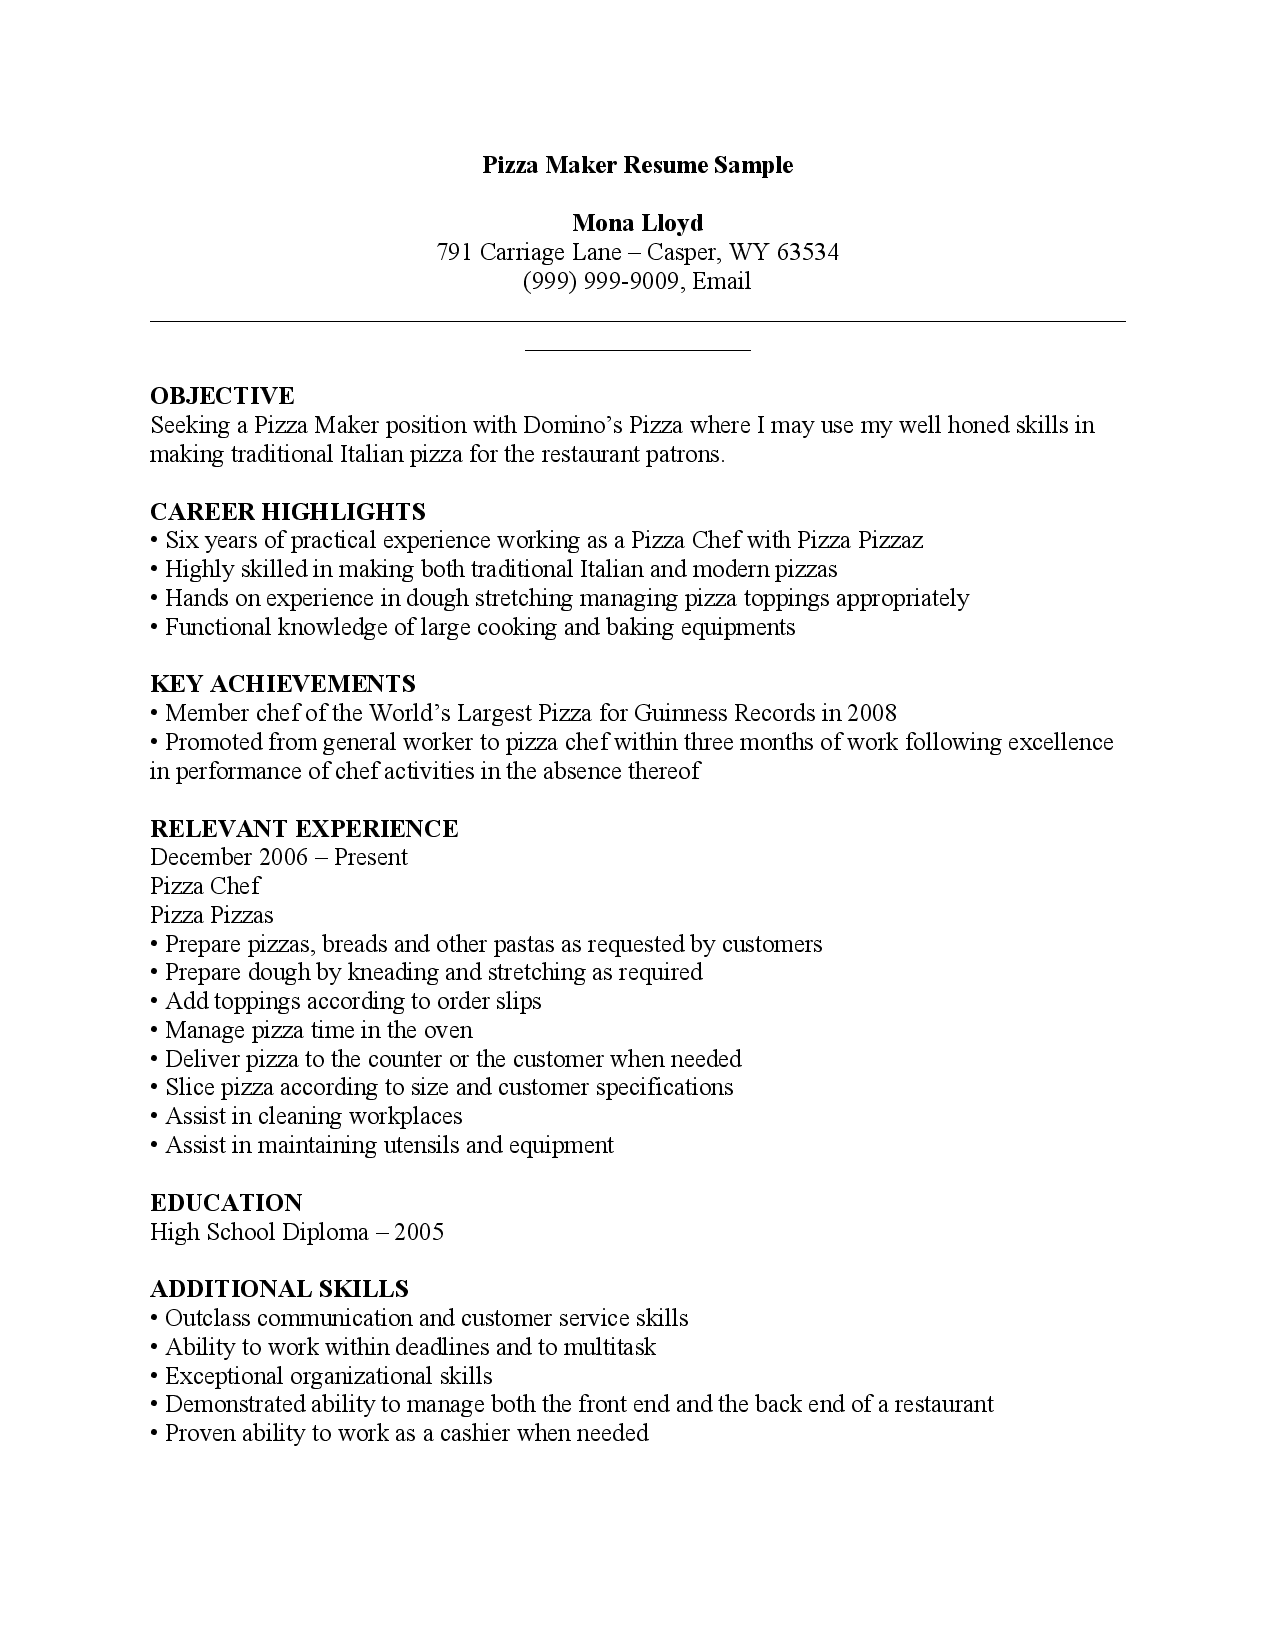 Cover Letter Maker Human Resource Sample Thankyou Pizza  Cover Letter Generator